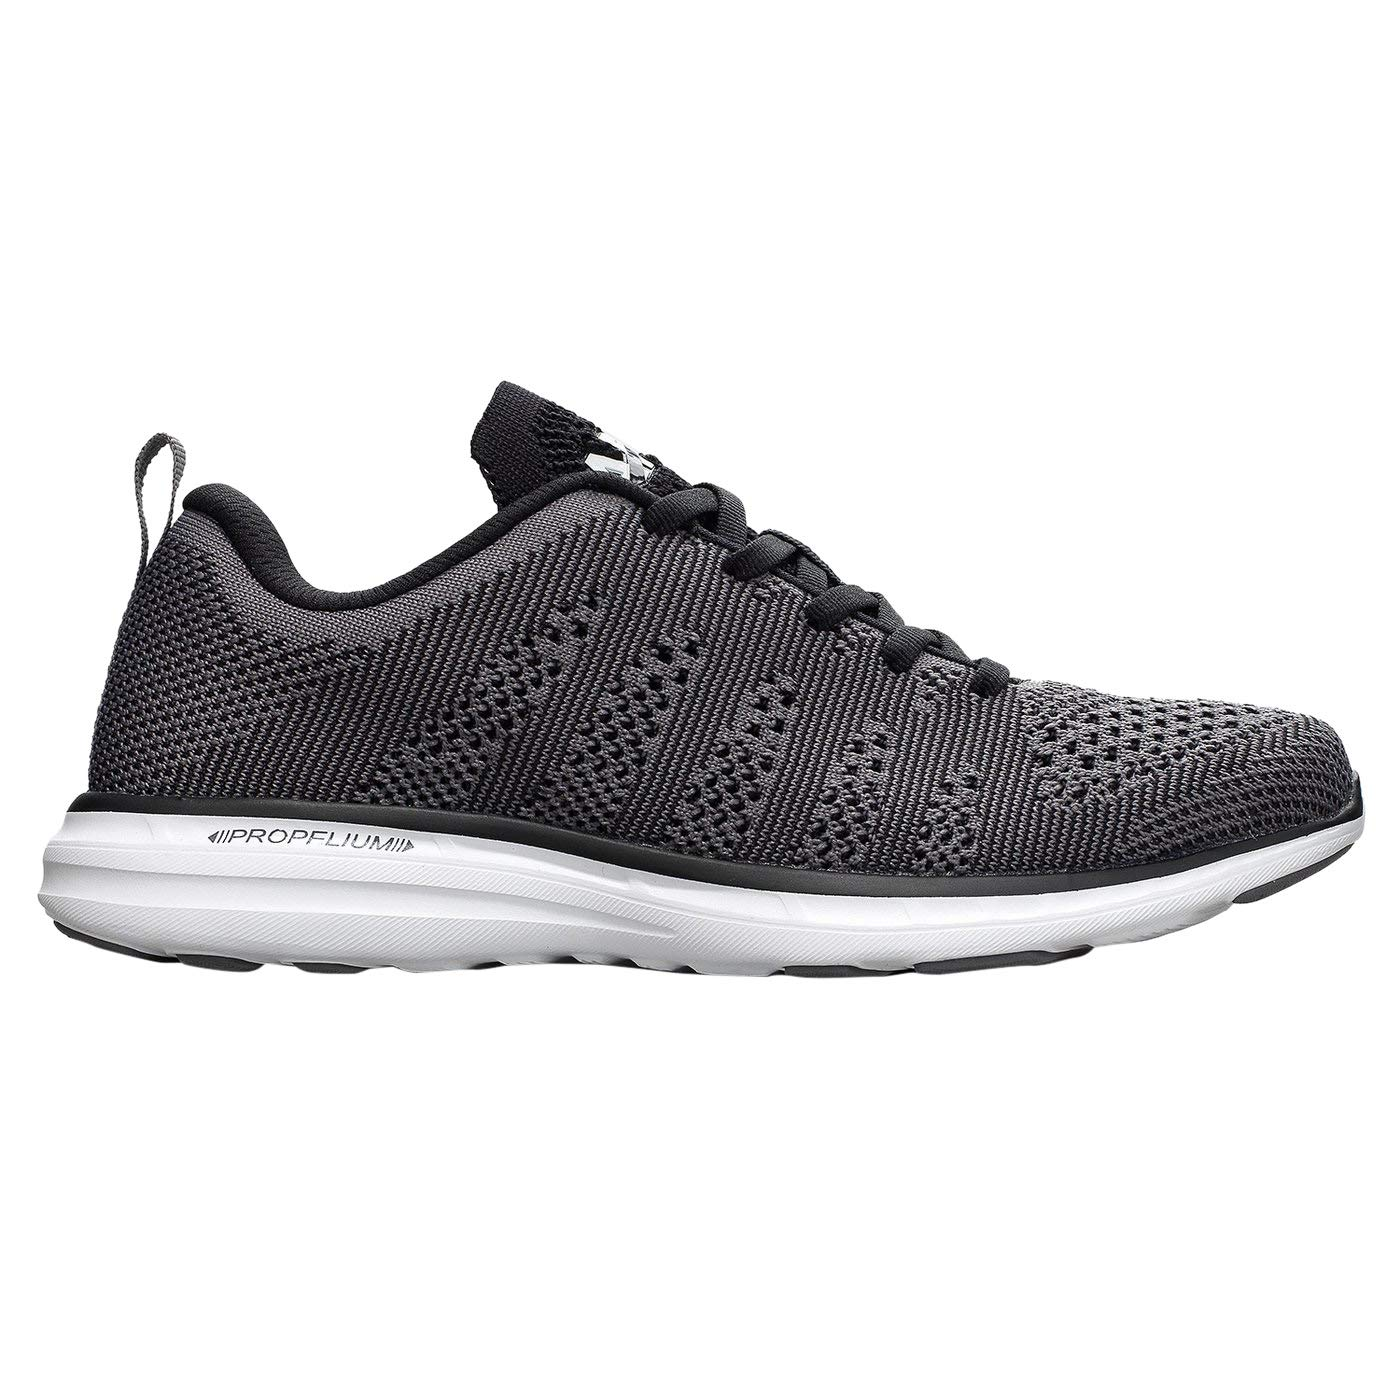 Image of APL: Athletic Propulsion Labs Men's Techloom Pro Running Sneakers, Smoke/Black/White, 10 D(M) US Road Running